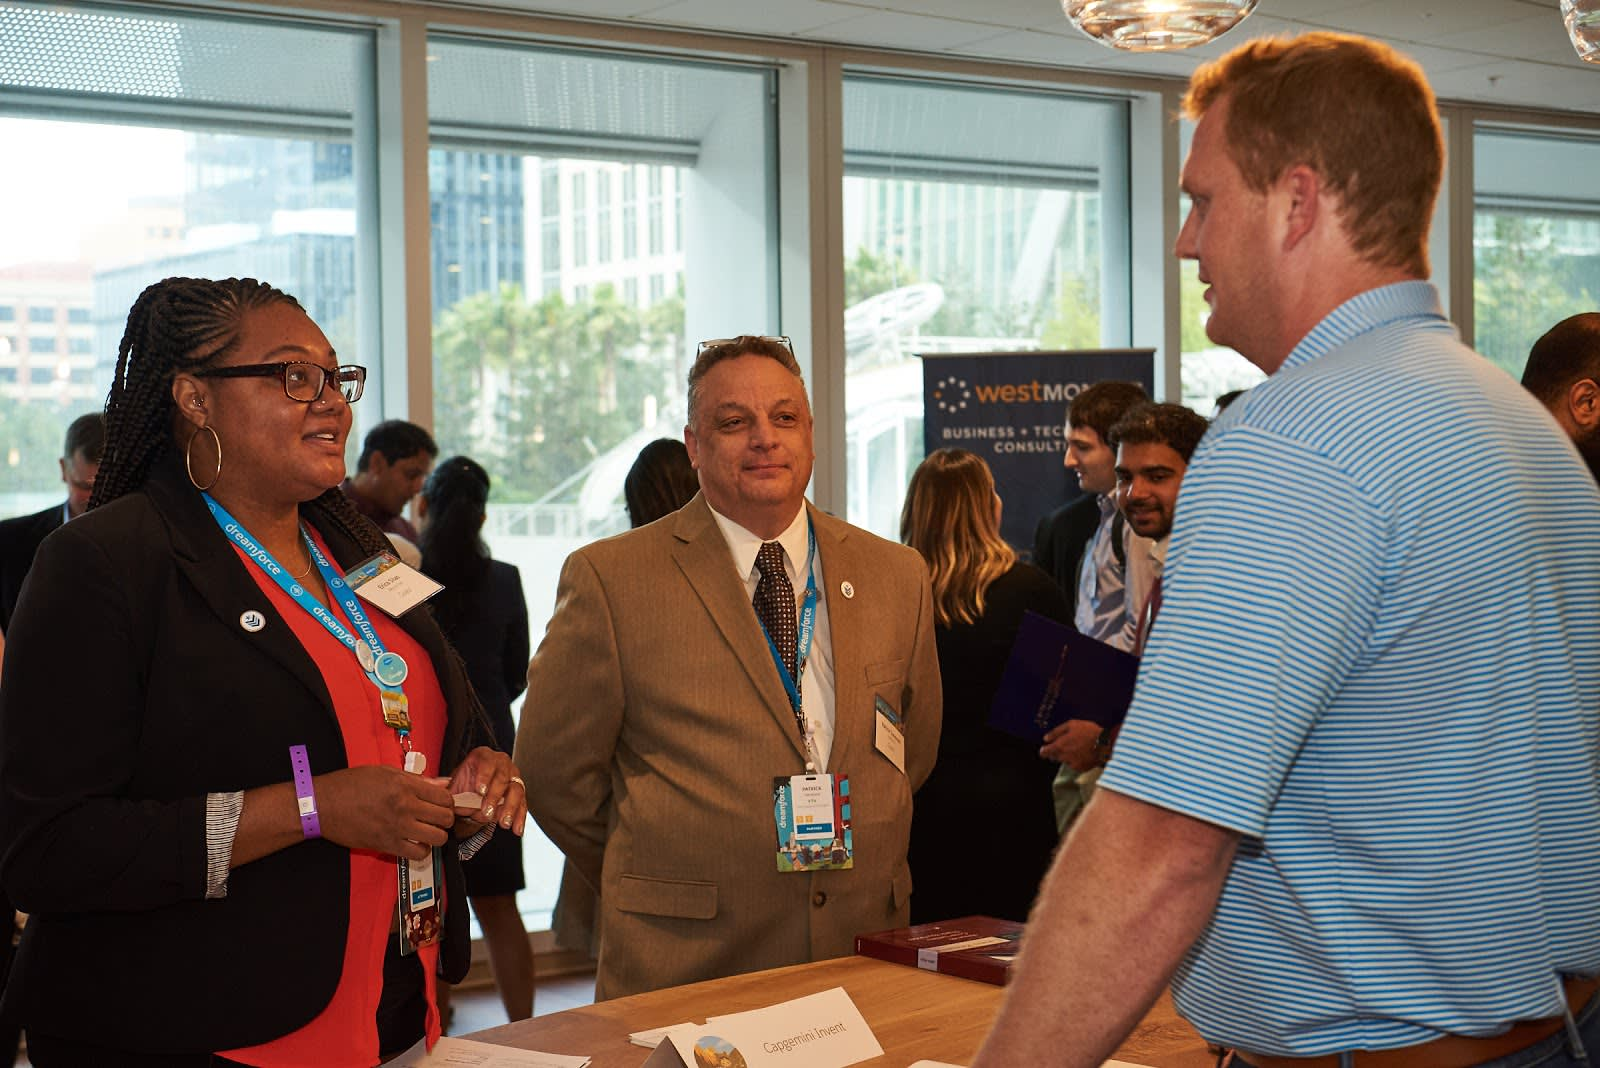 Alt text: Three people meeting at a Vetforce recruitment event.